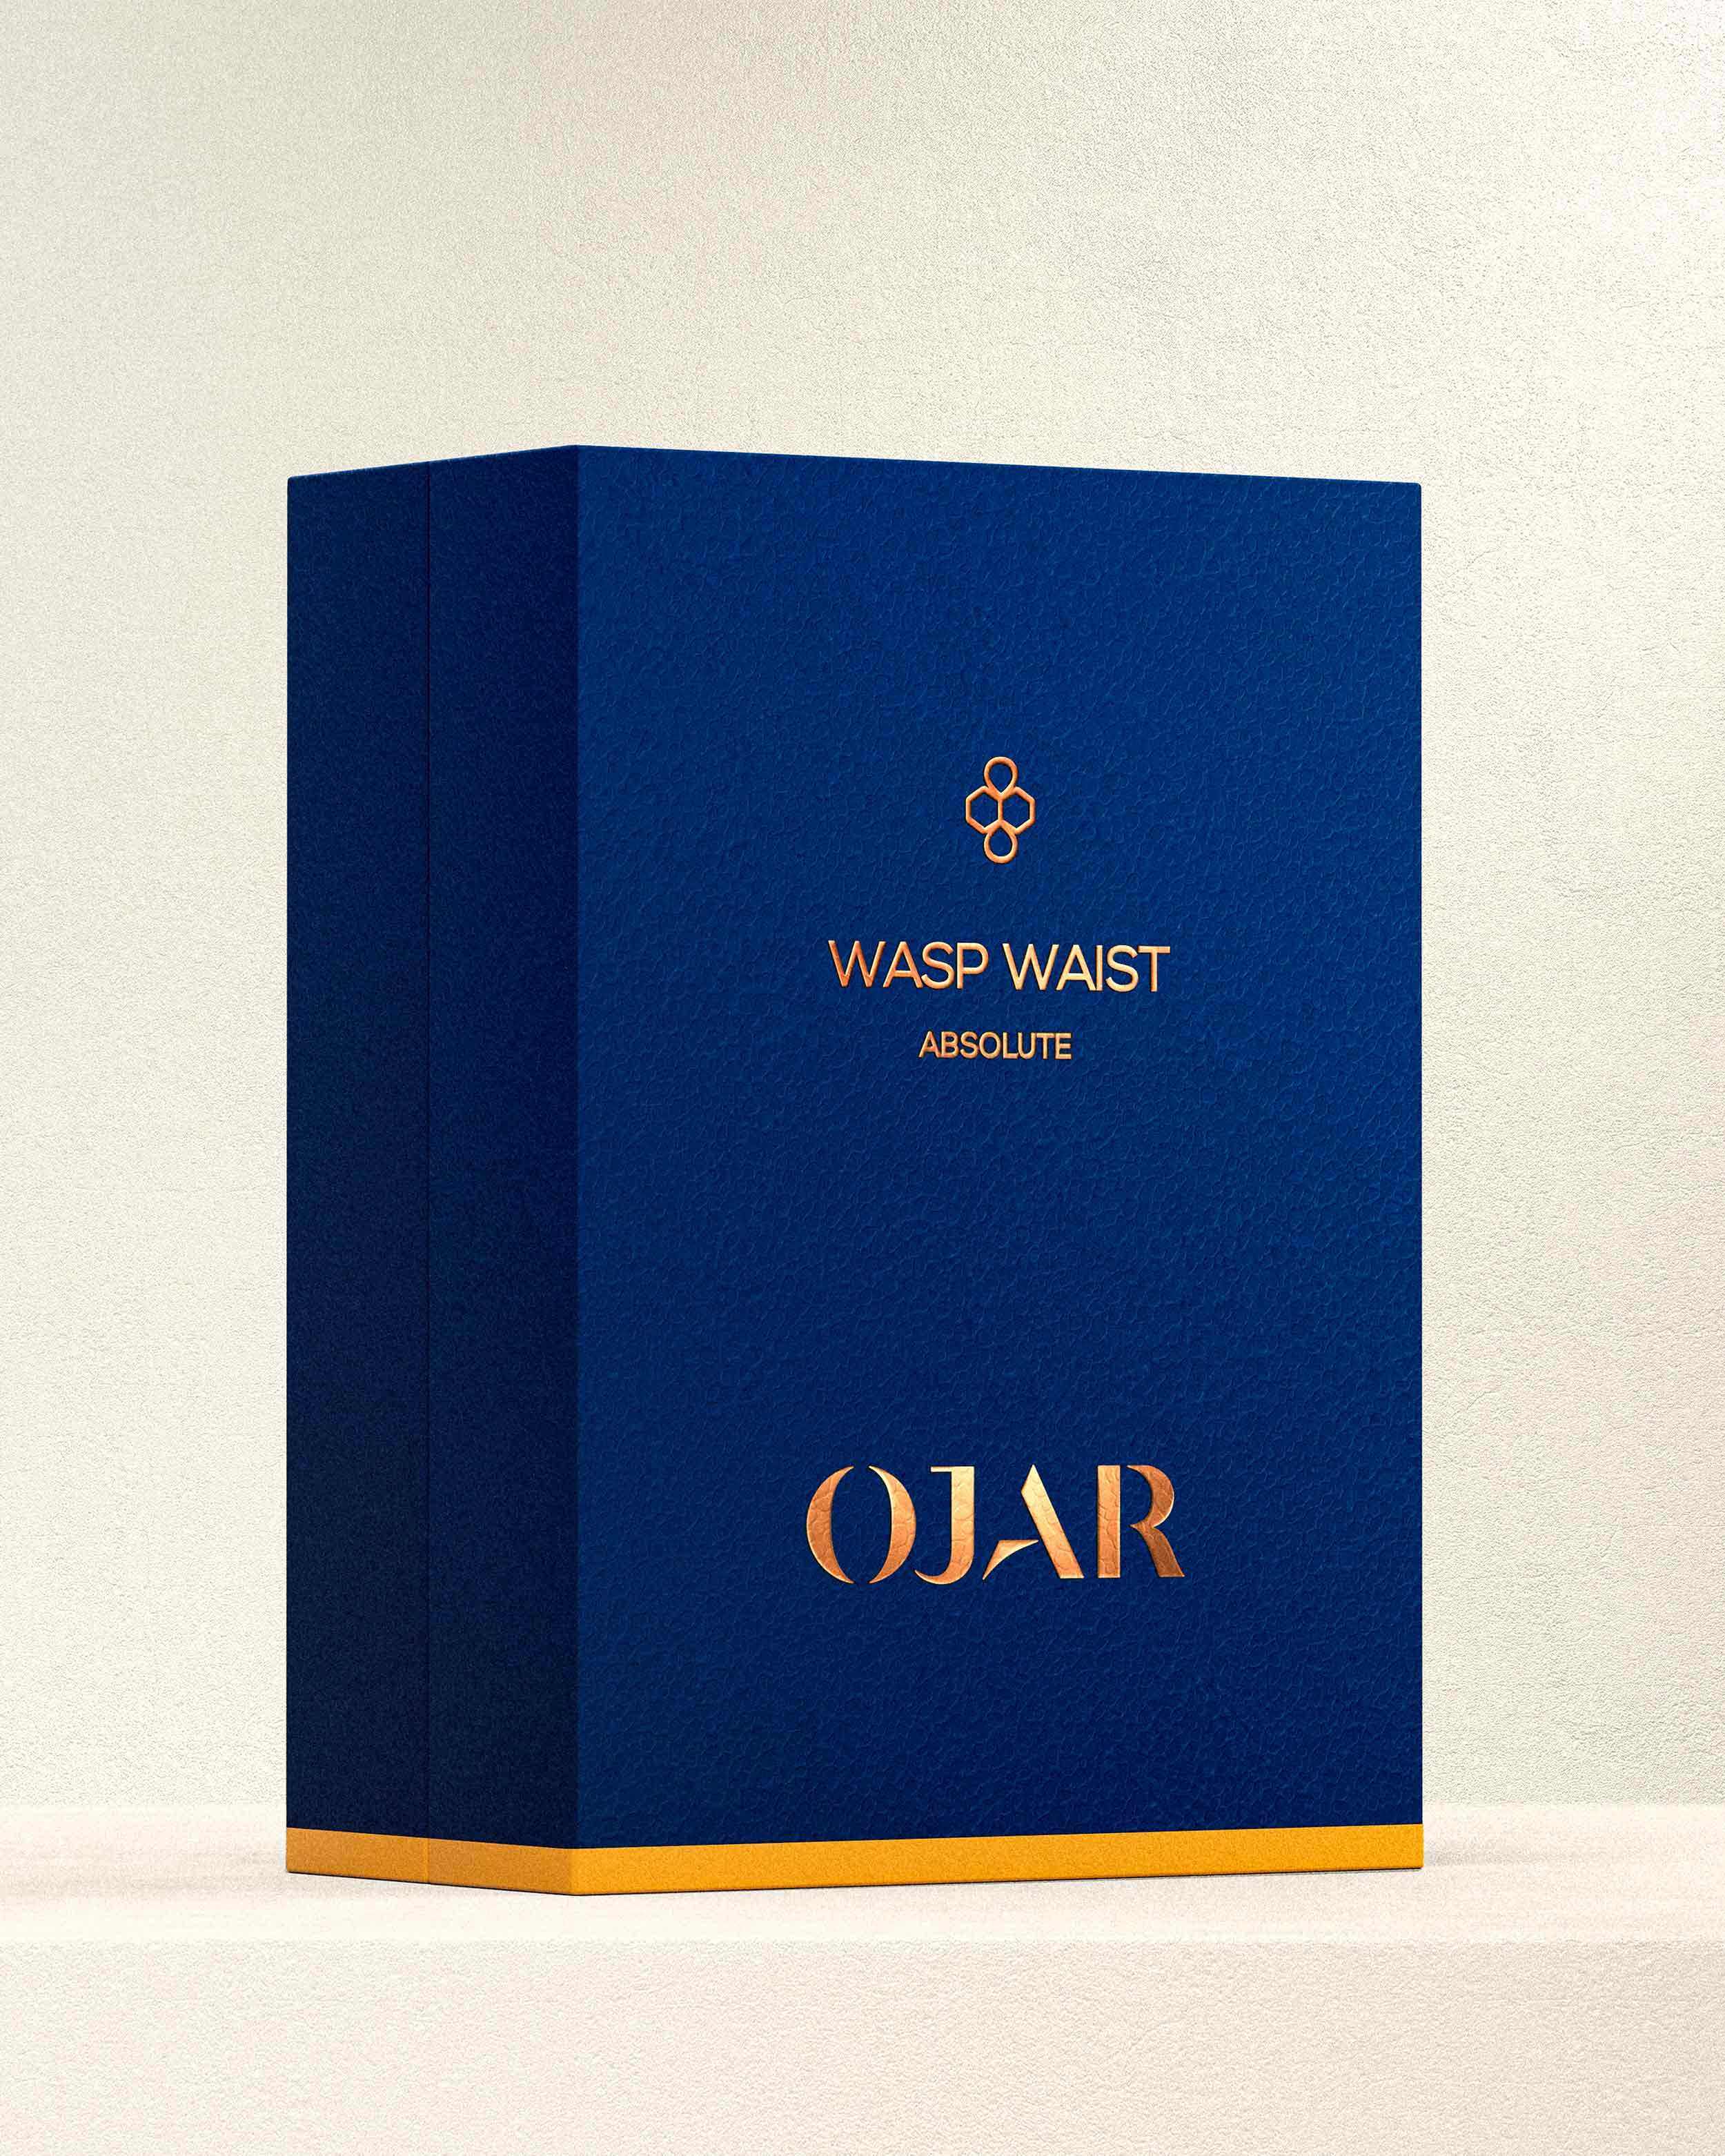 OJAR Absolute Wasp Waist Perfume Pack